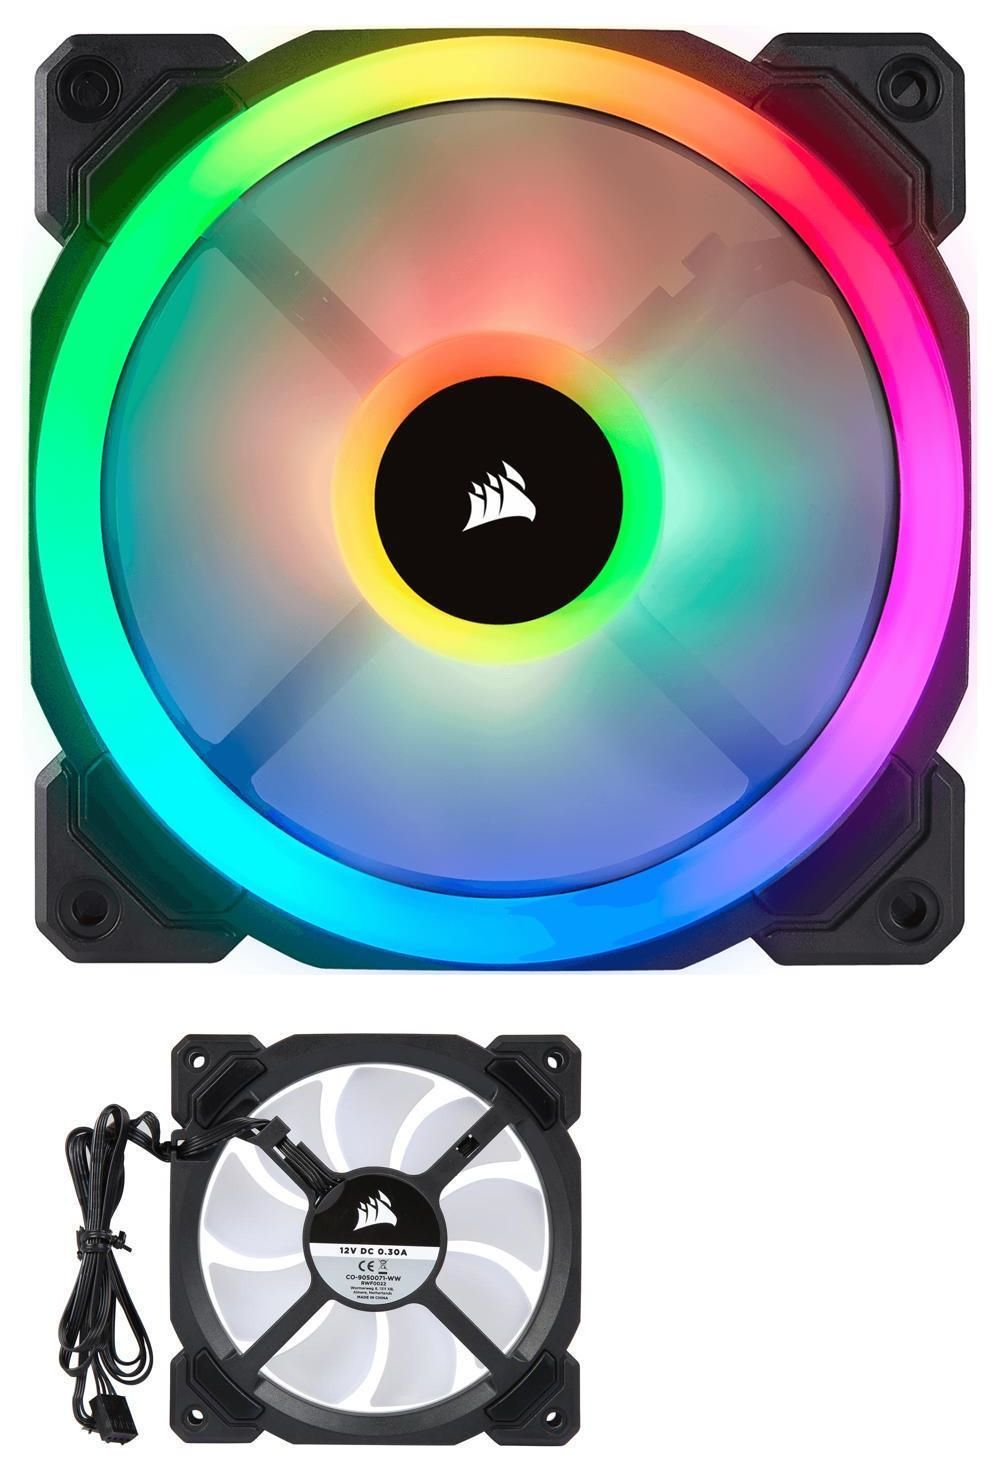 Fans Heat Sinks And Cooling 42000 Corsair Ll Series Ll120 Rgb 120mm Dual Light Loop Rgb Led Pwm Fan Co 9050071 Ww Buy Rgb Led Computer Case Best Computer